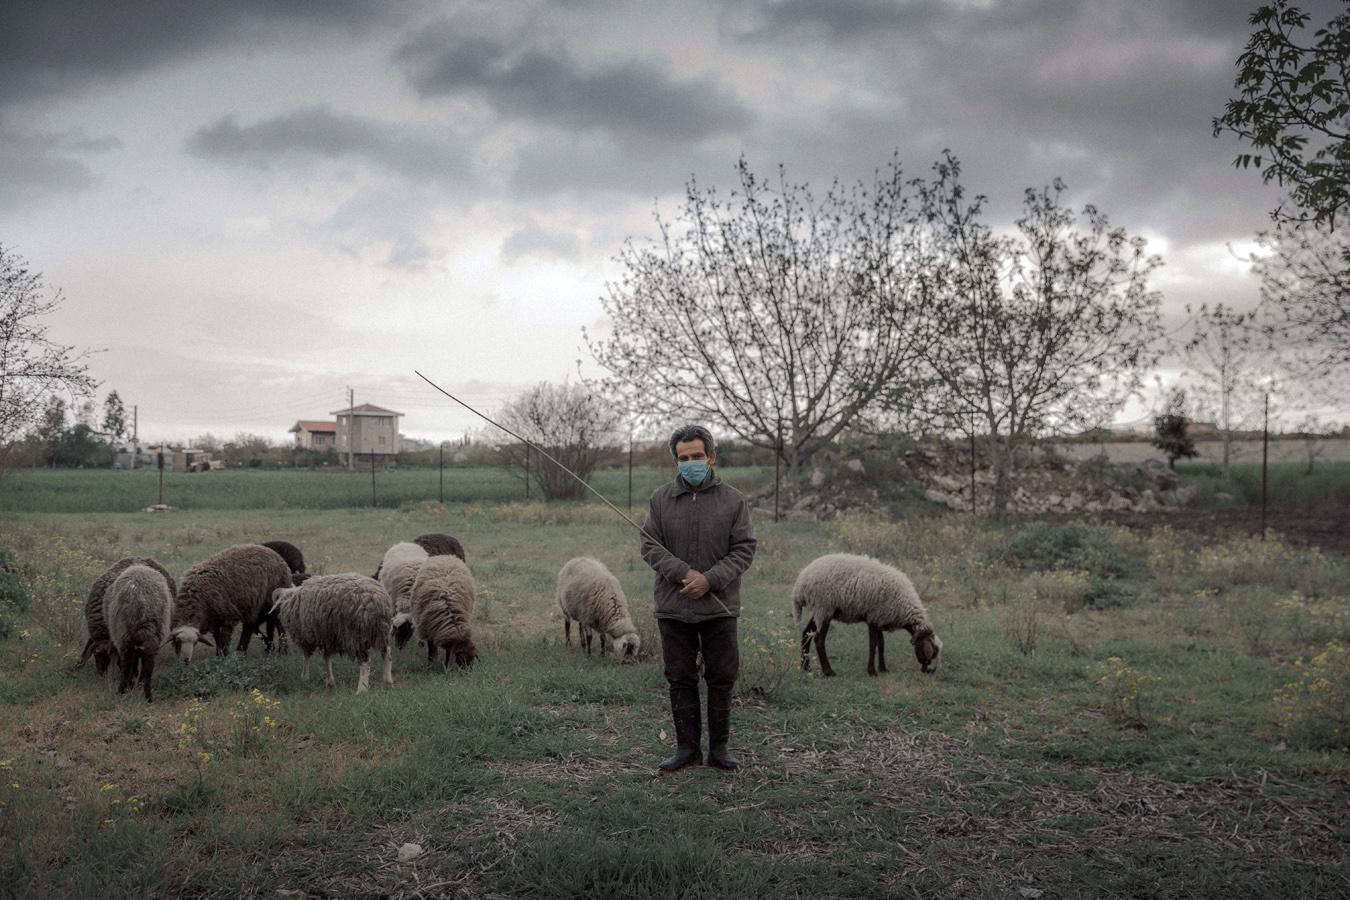 Iran-Mazandaran: The flock of sheep is grazing. The shepherd said he uses clean and deserted routs for transporting the sheep. On the first days of quarantine they were enclosed at the home and I have to find the grass for them. After a while, I took them out to deserted places. I wear a mask and I am aware not to get close to them. I don't know whether a sheep could get infected by Coronavirus. I am afraid if I transmit the virus and put the sheep in danger. Do you know anything about it?